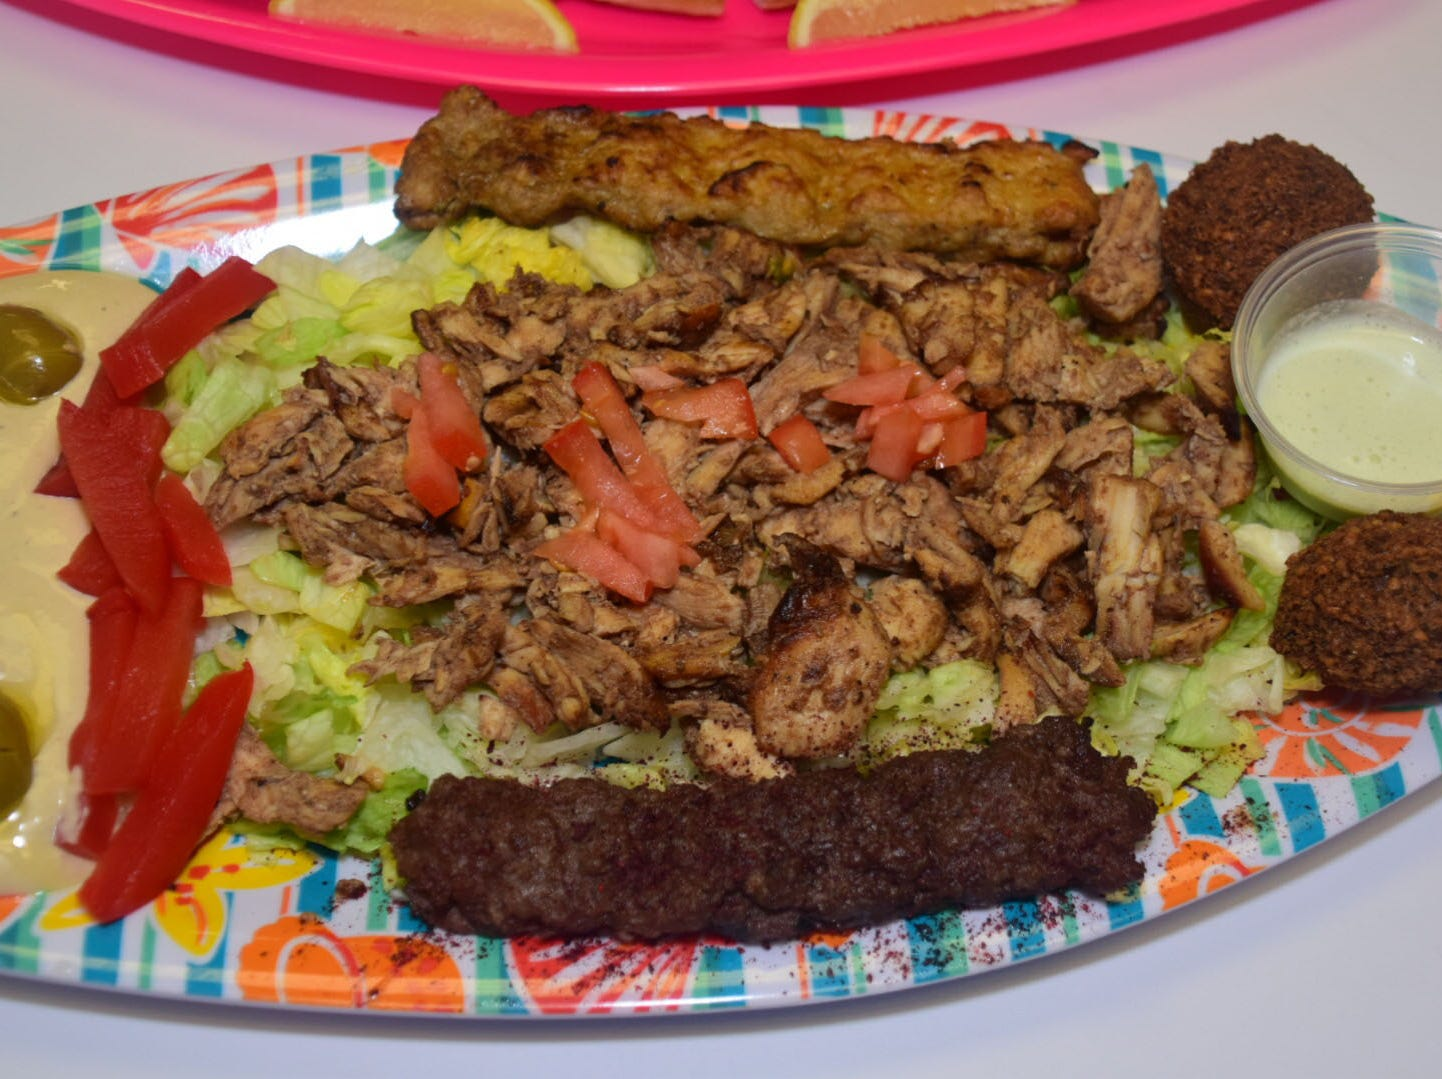 A mixed plate feeds four people for $19.99 and features everything on the menu from humus to kabobs to Shawarma to grape leaves.